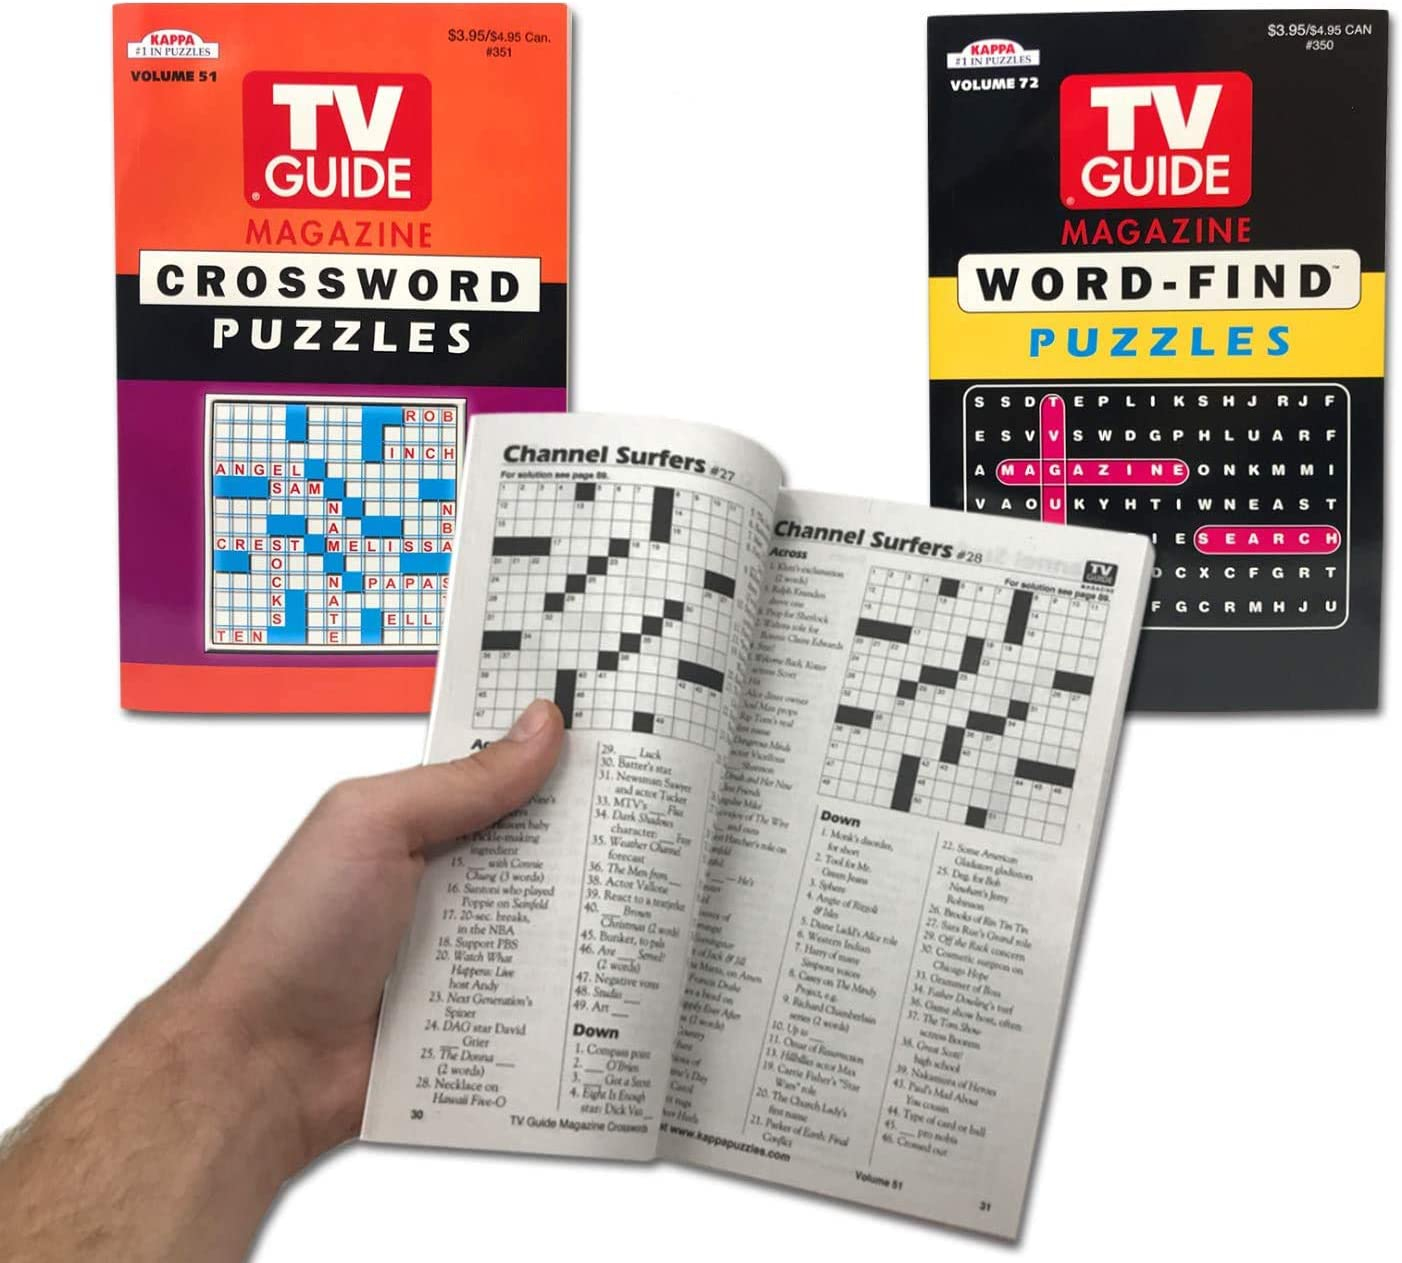 Amazon Com Tv Guide Magazine Crossword Puzzle Word Puzzles Book Word Find Puzzle Book Digest Size For Travel 2 Pack Toys Games